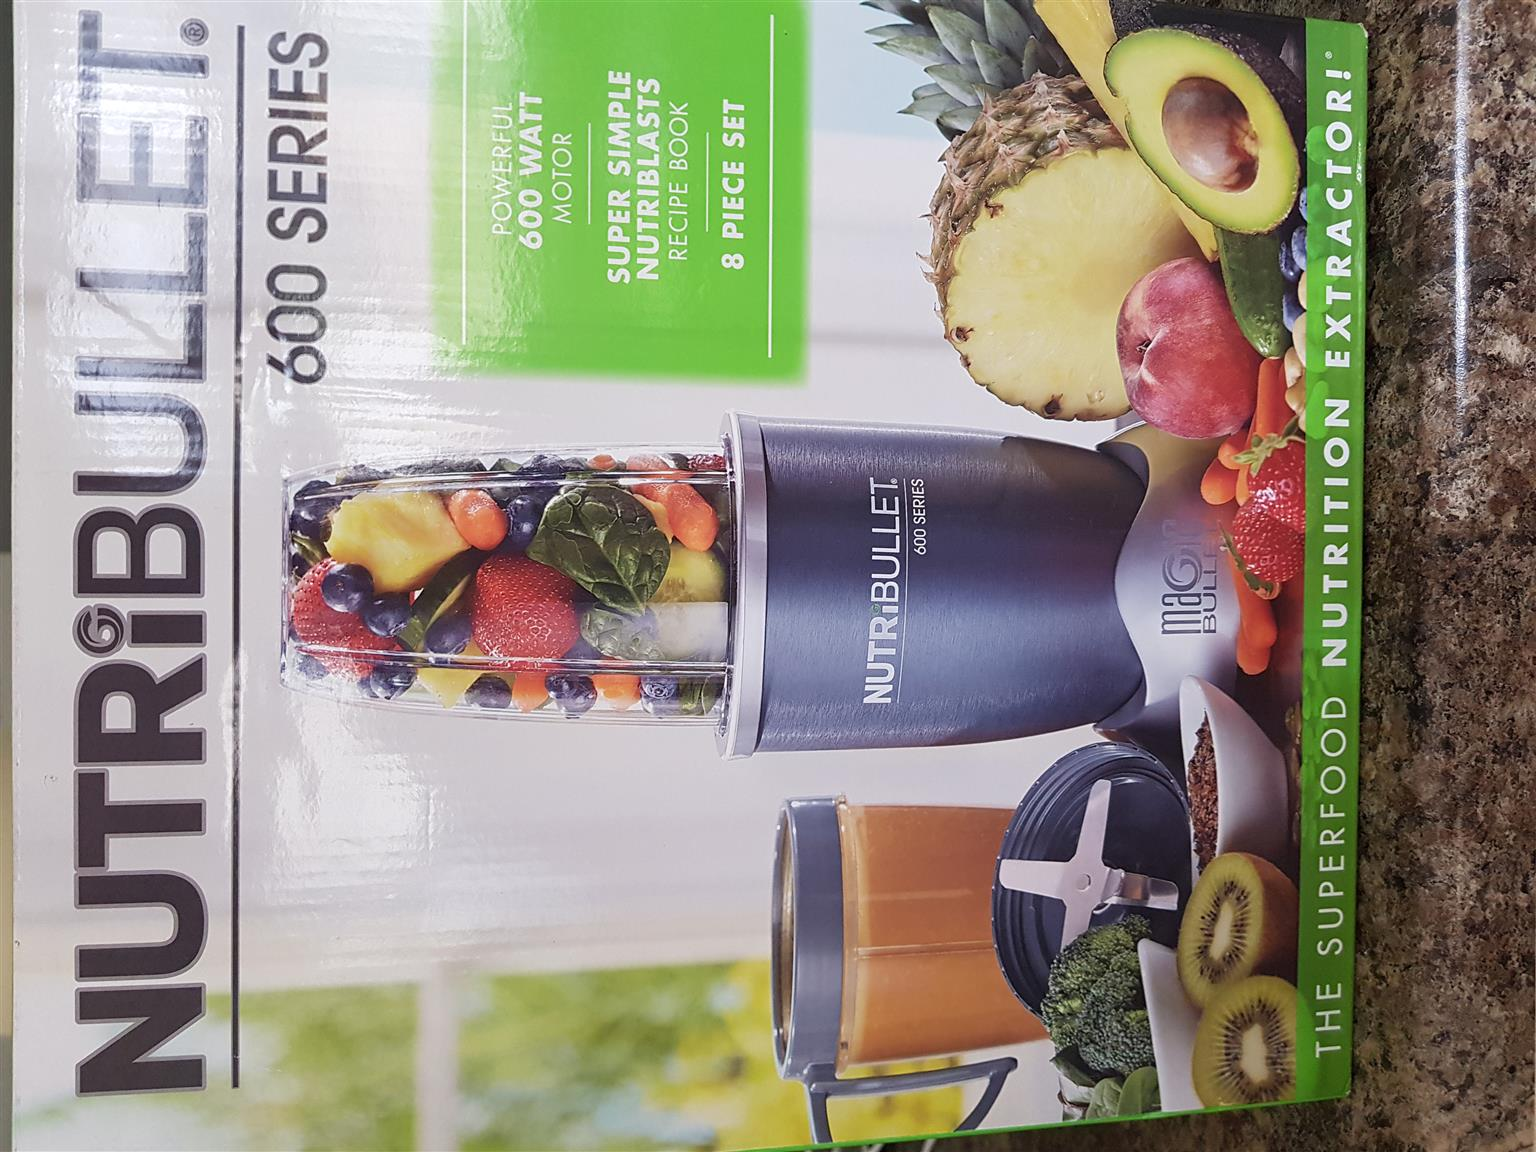 Brand new in the box 2x Nutribullet